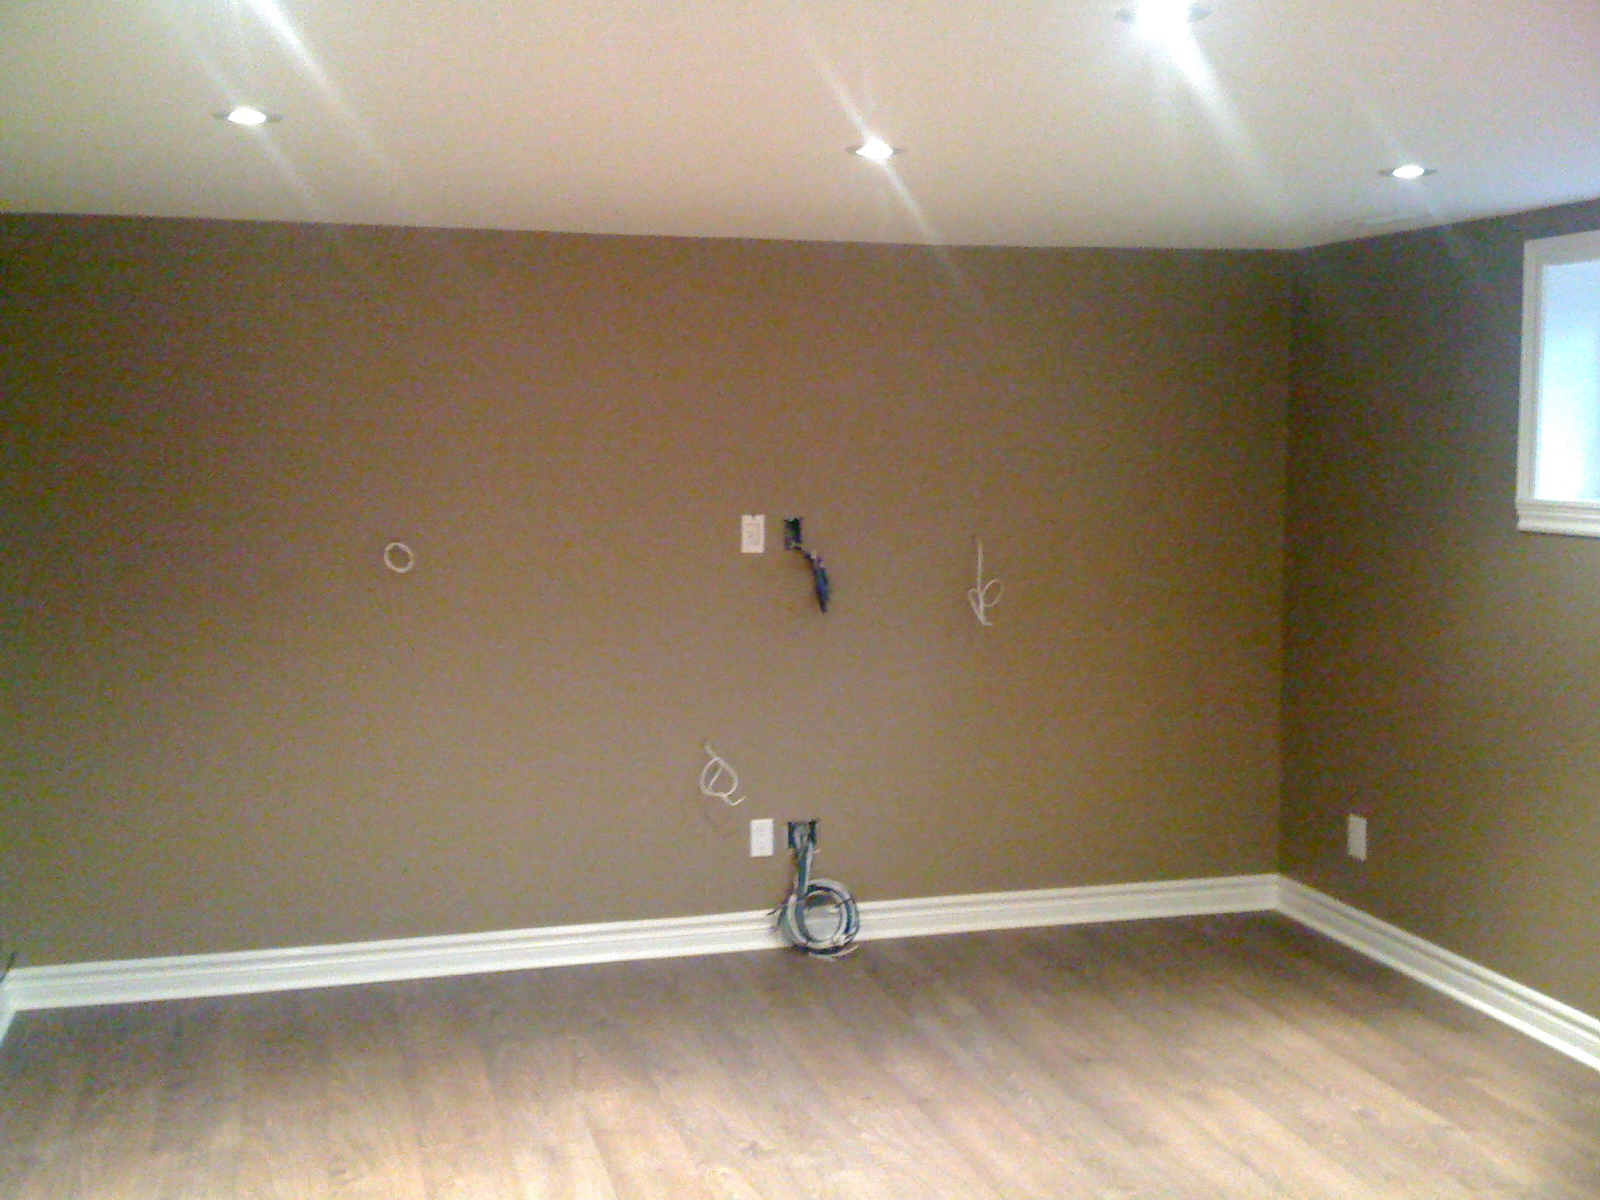 Entertainment area in basement